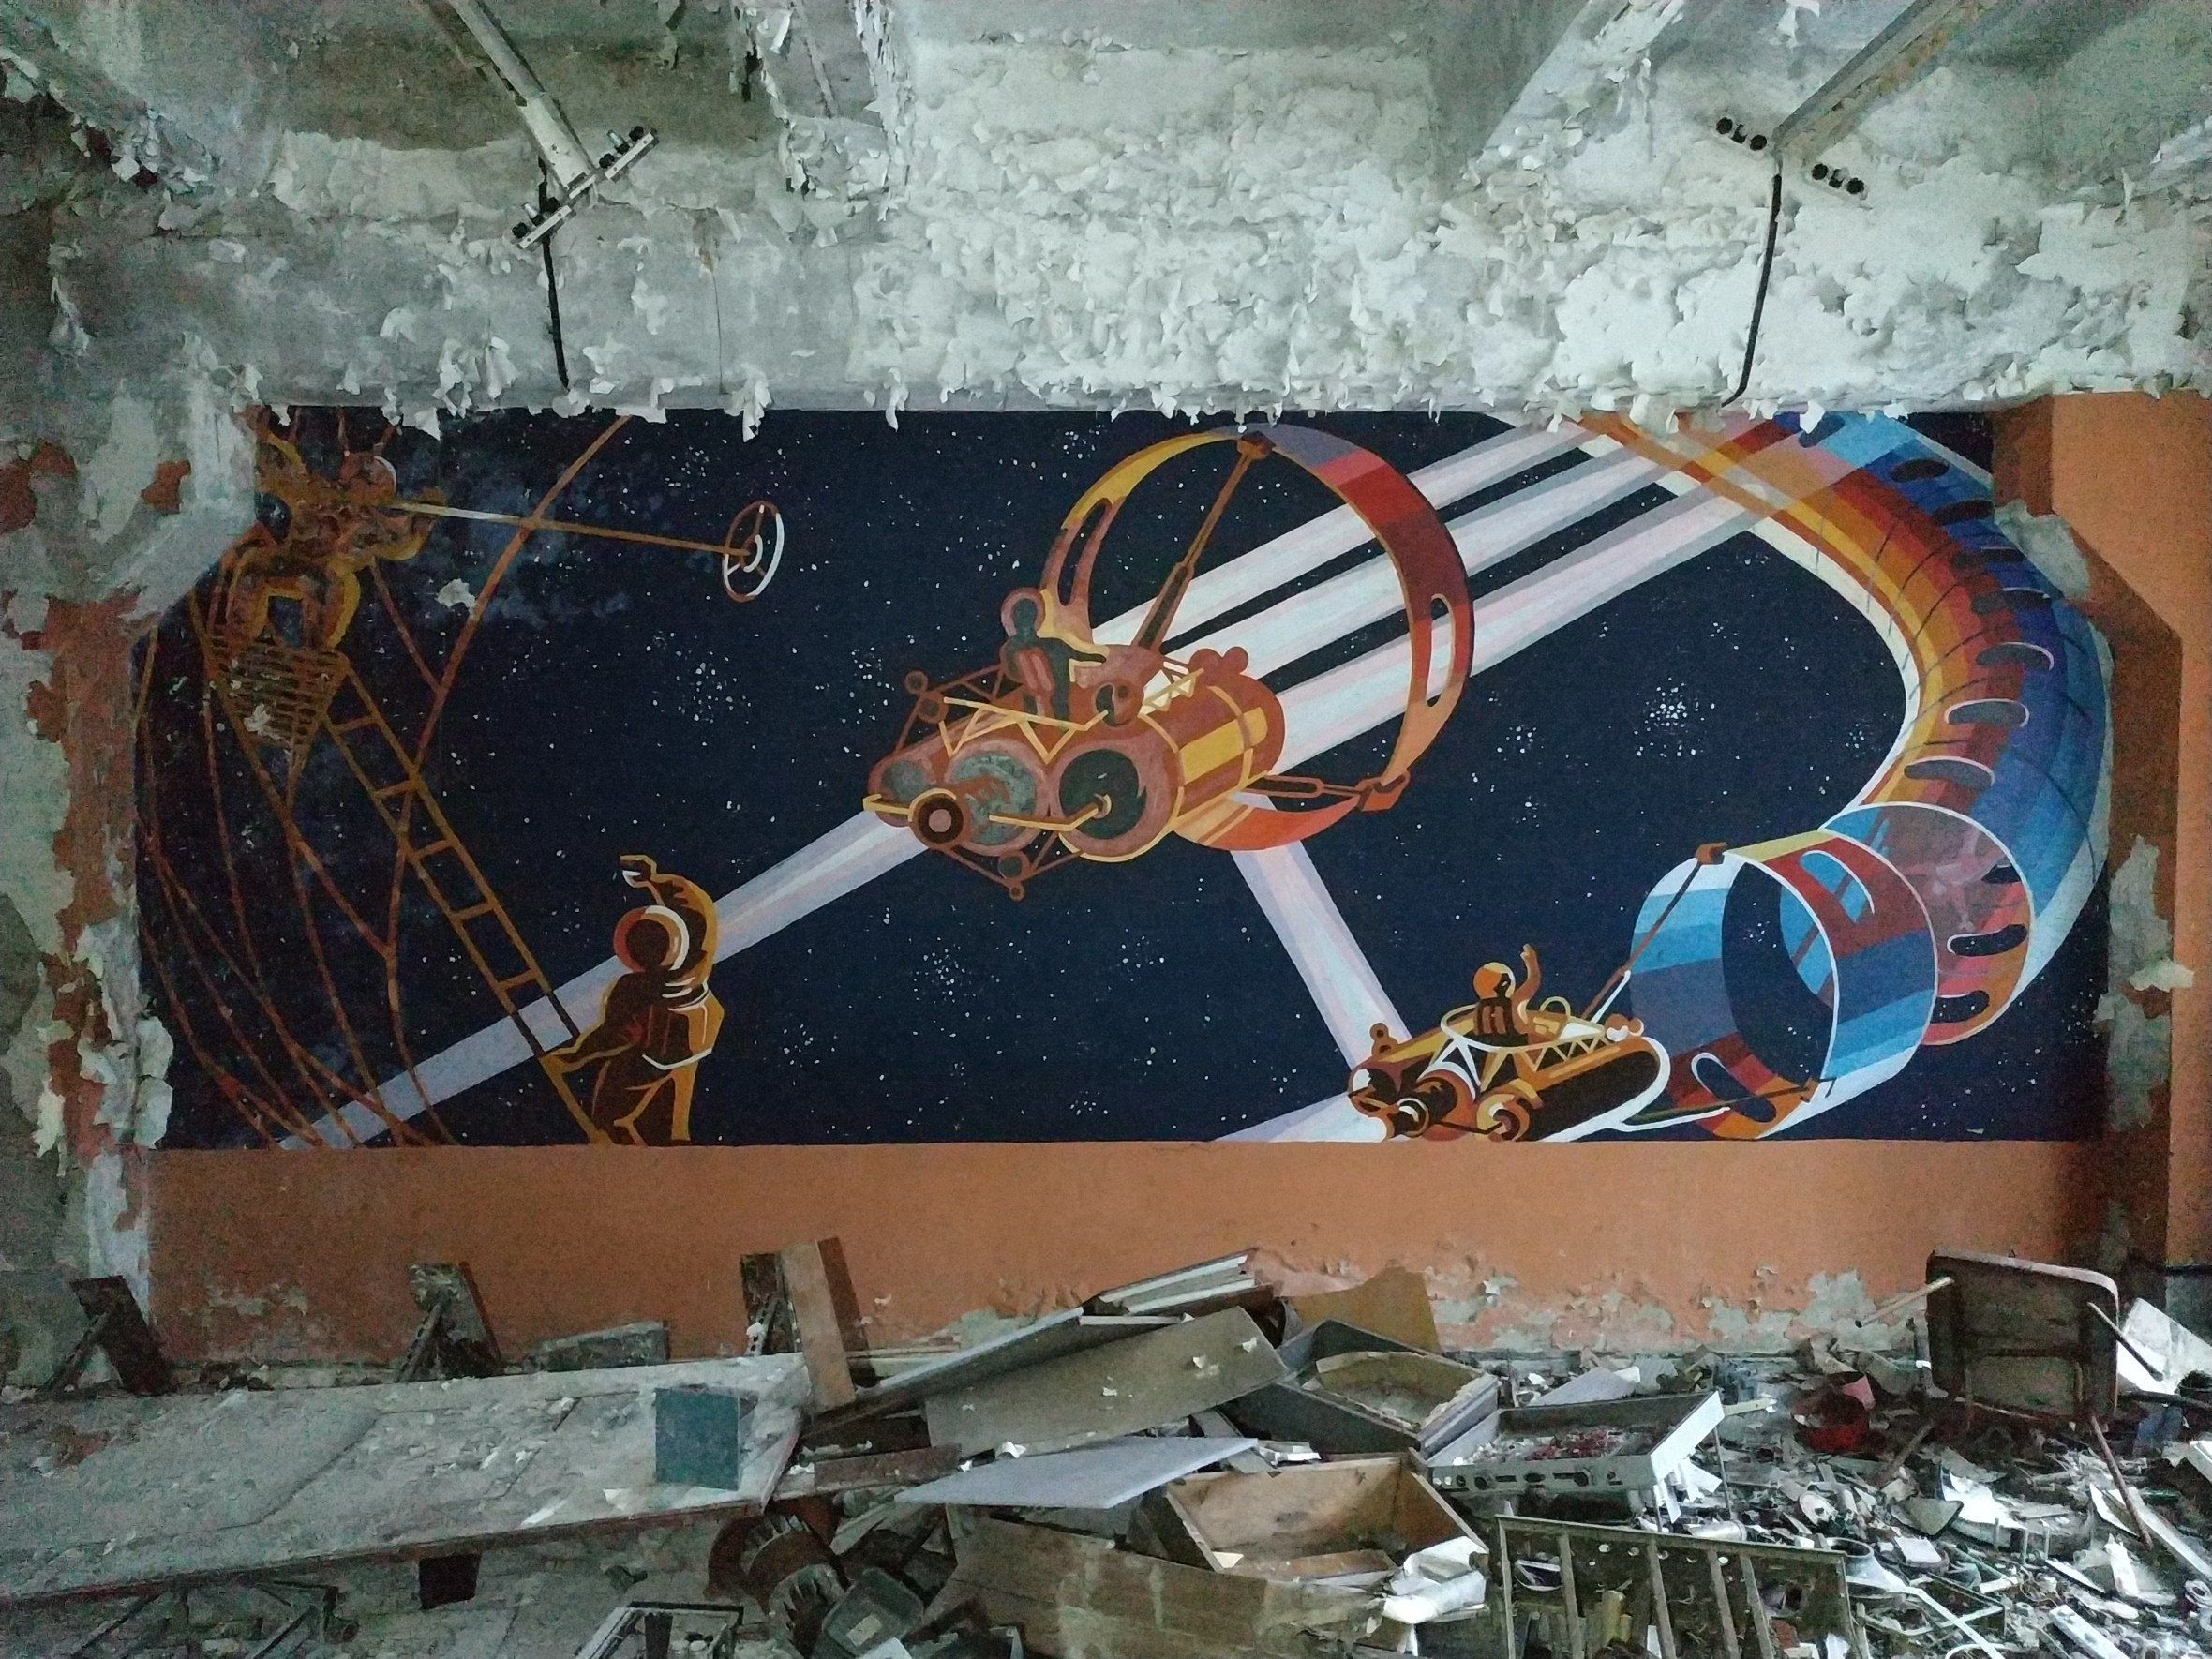 Socialist wall murals in a refectory, Chernobyl